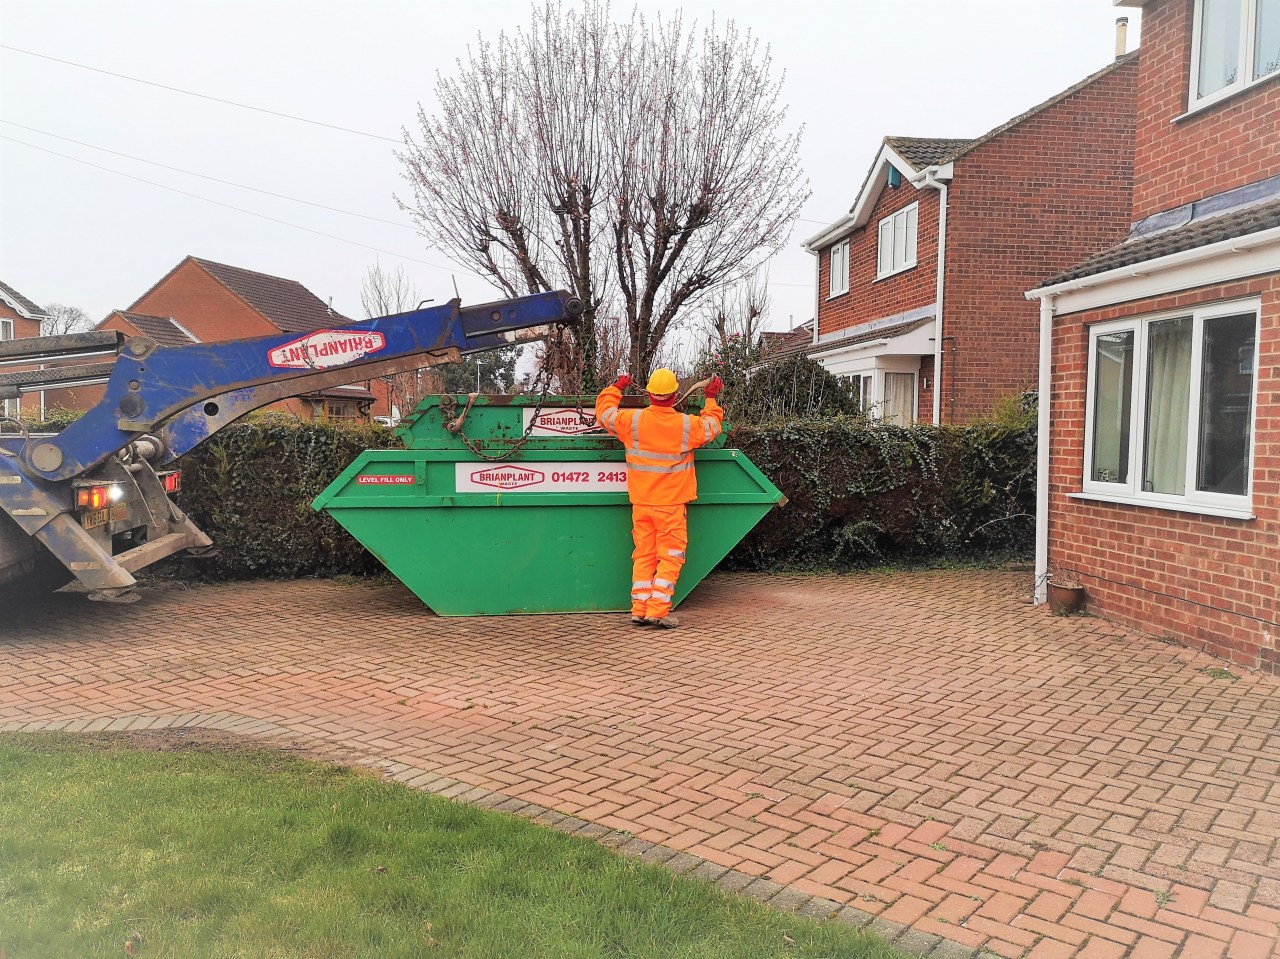 Image for: YMCA or a Skip Delivery... that is the question...